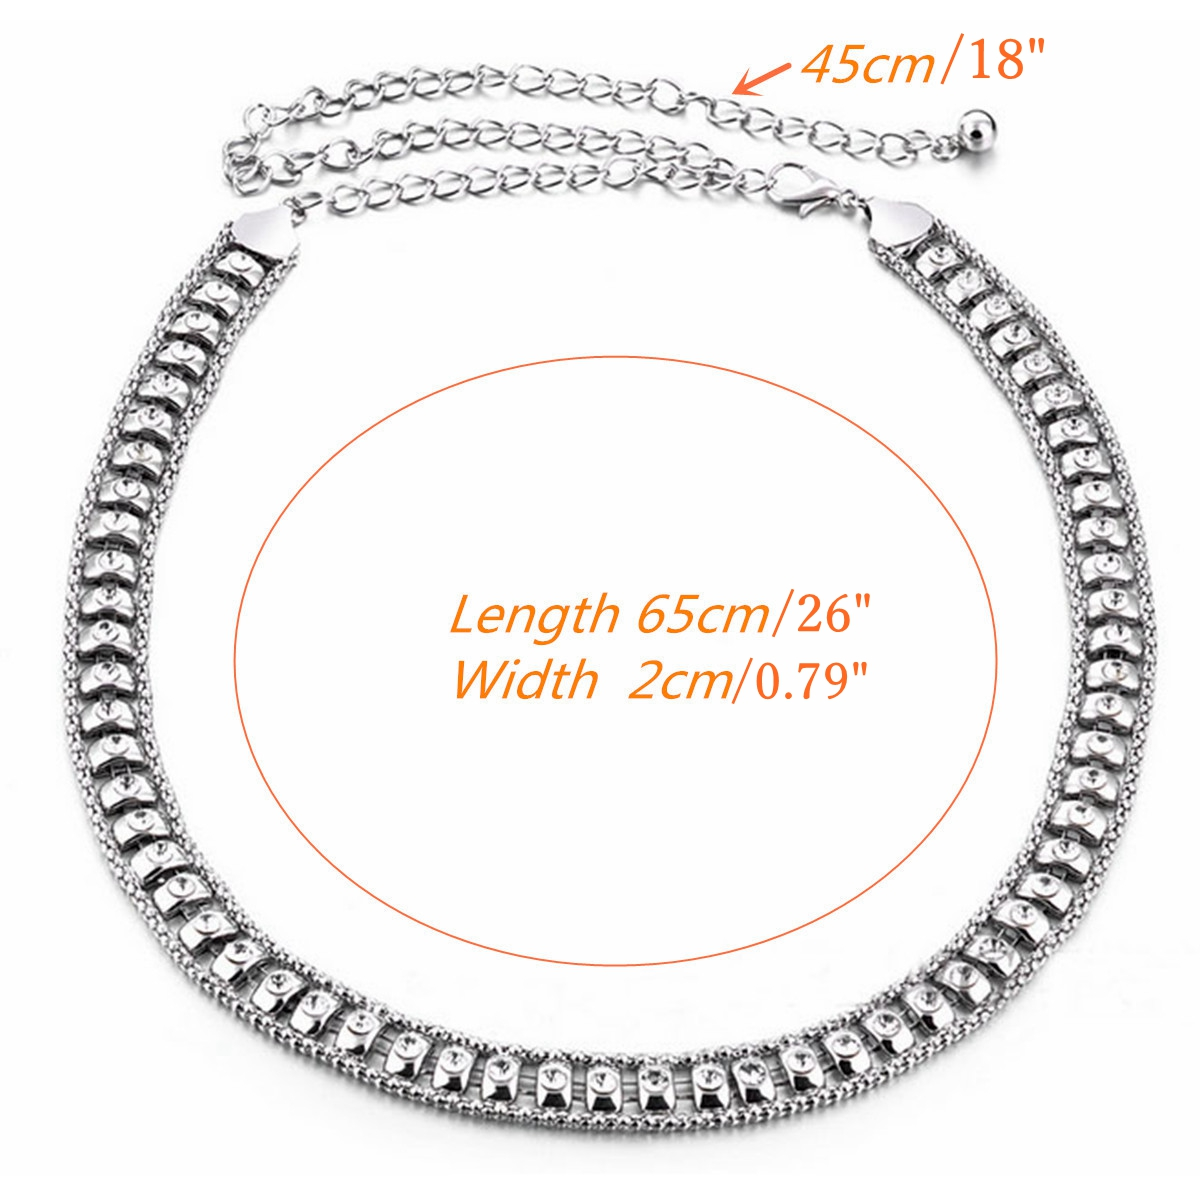 Rhinestone Crystal Shiny Charm Women Belt Waist Chain Body